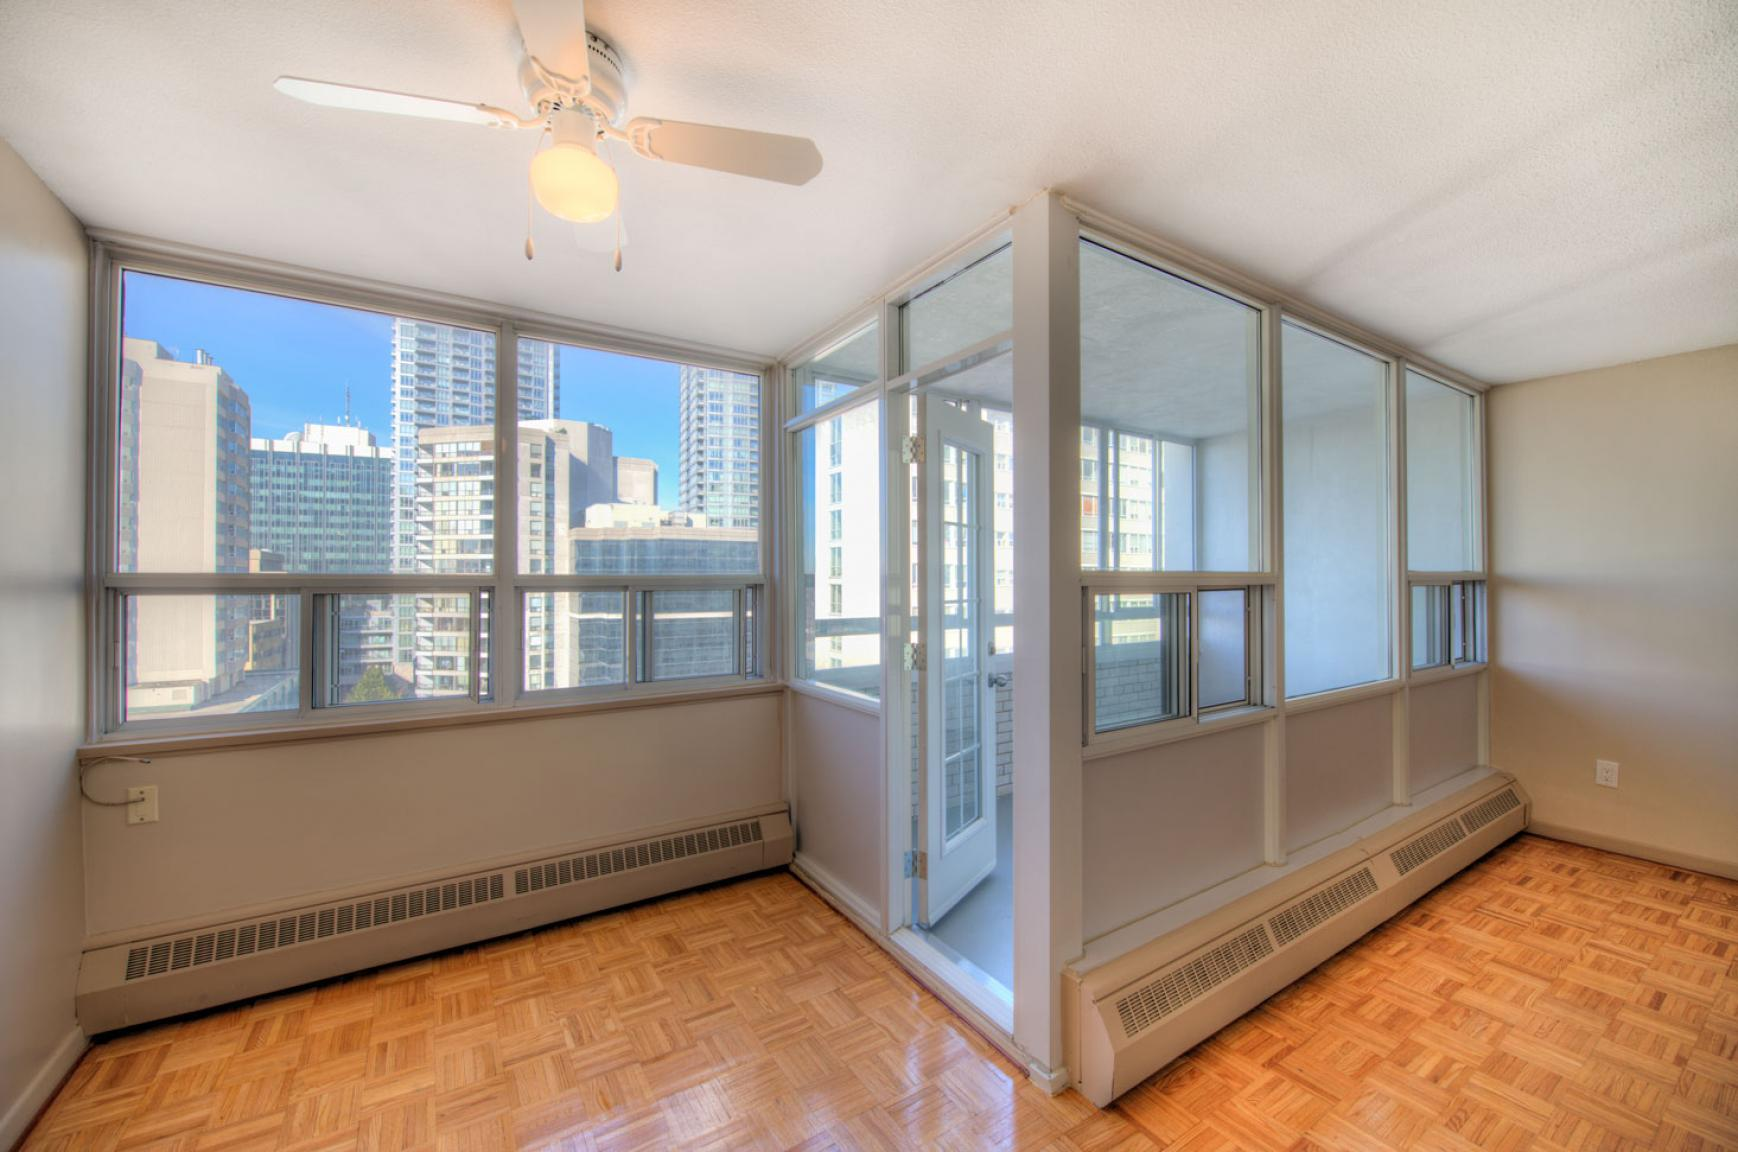 1 bedroom Apartments for rent in Toronto at Holly Tower - Photo 15 - RentersPages – L399824